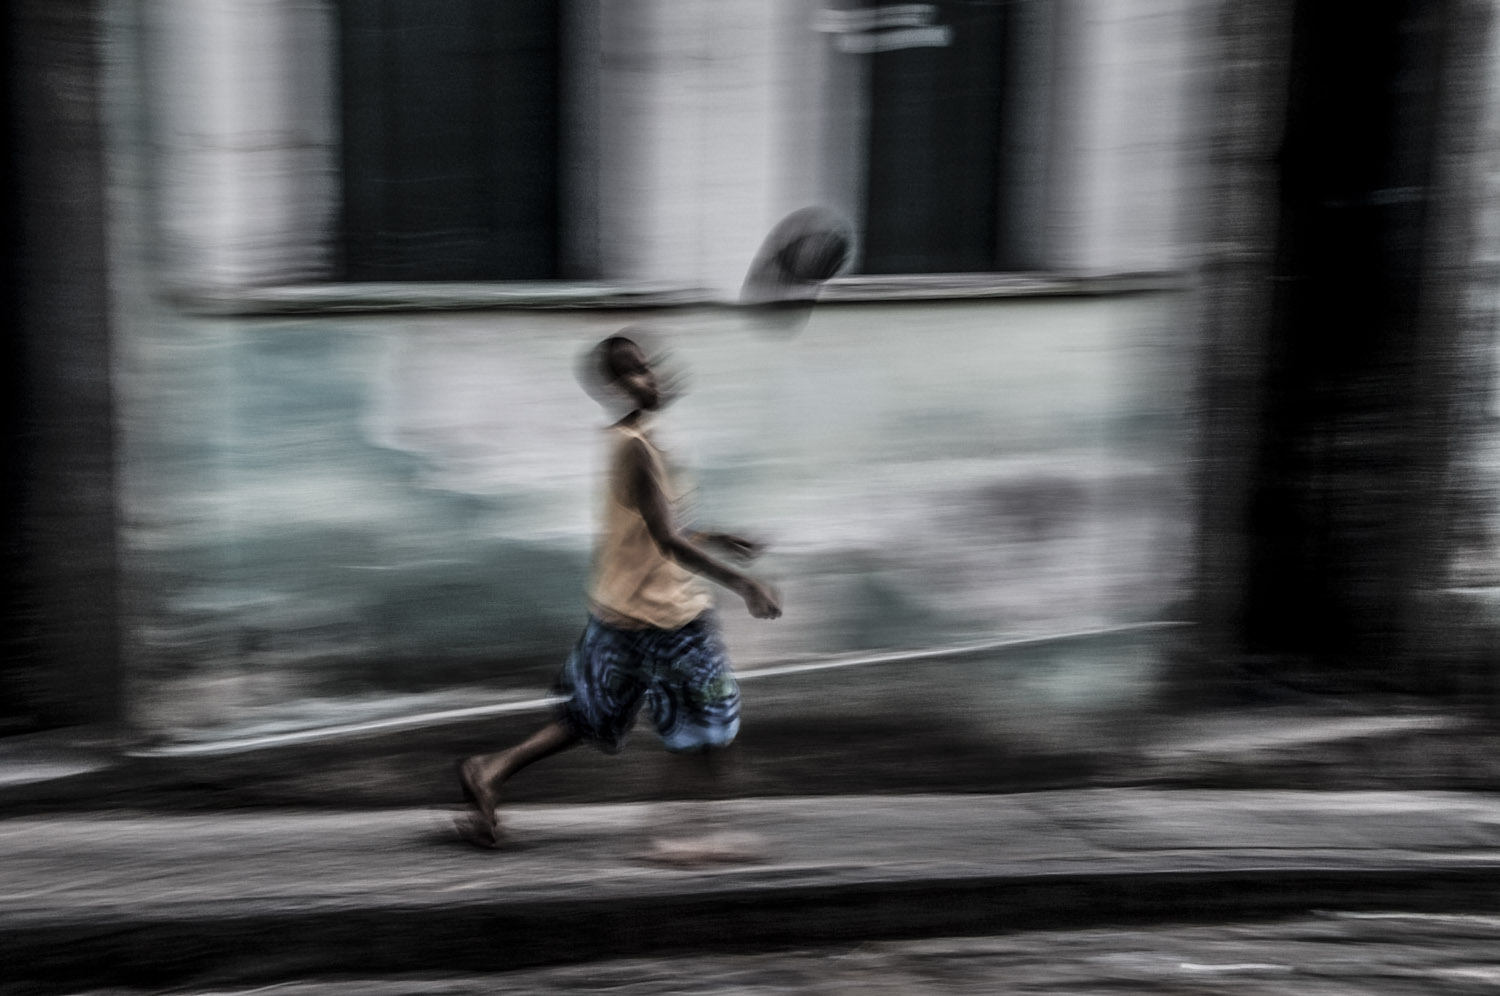 Boy plays soccer at a street in Salvador, Bahia.